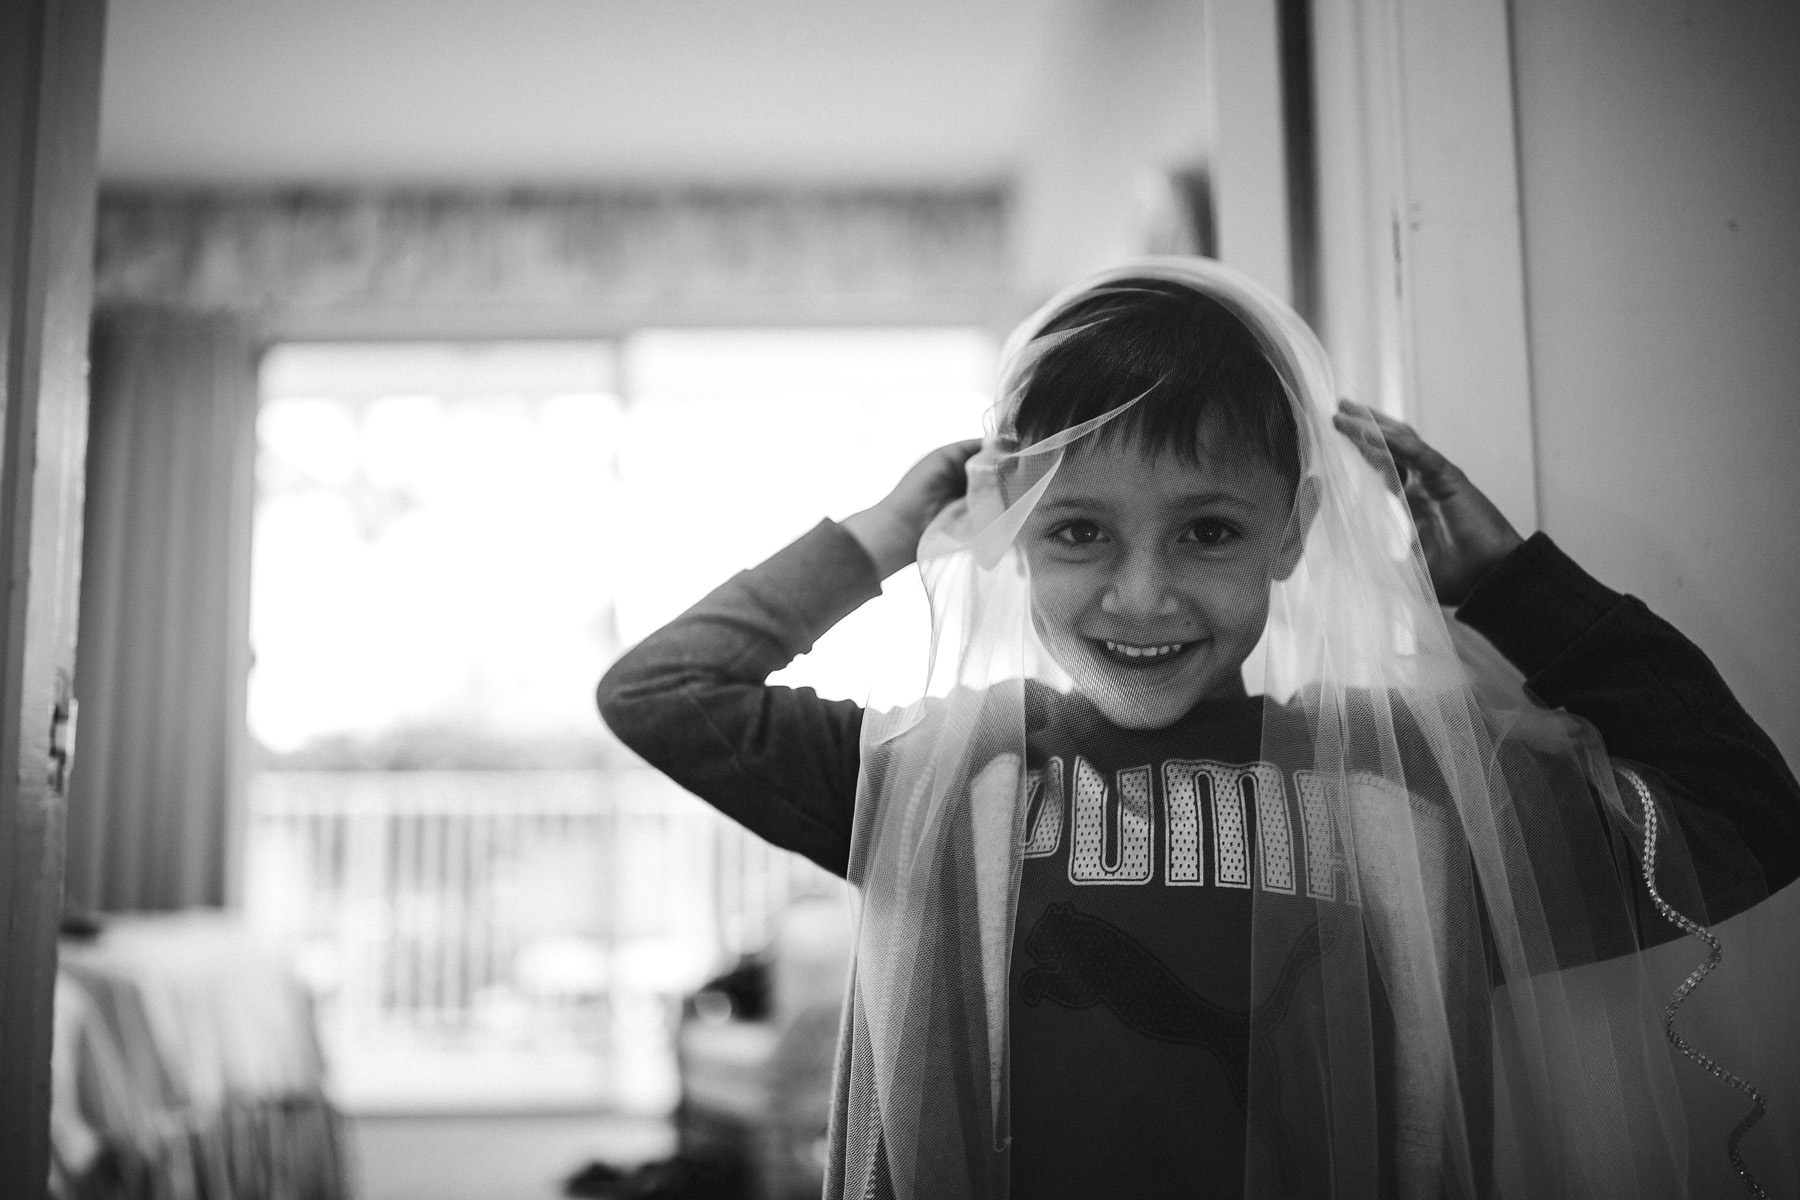 ring-bearer-antics-wedding-day-fun-tiny-house-photo-black-and-white.jpg